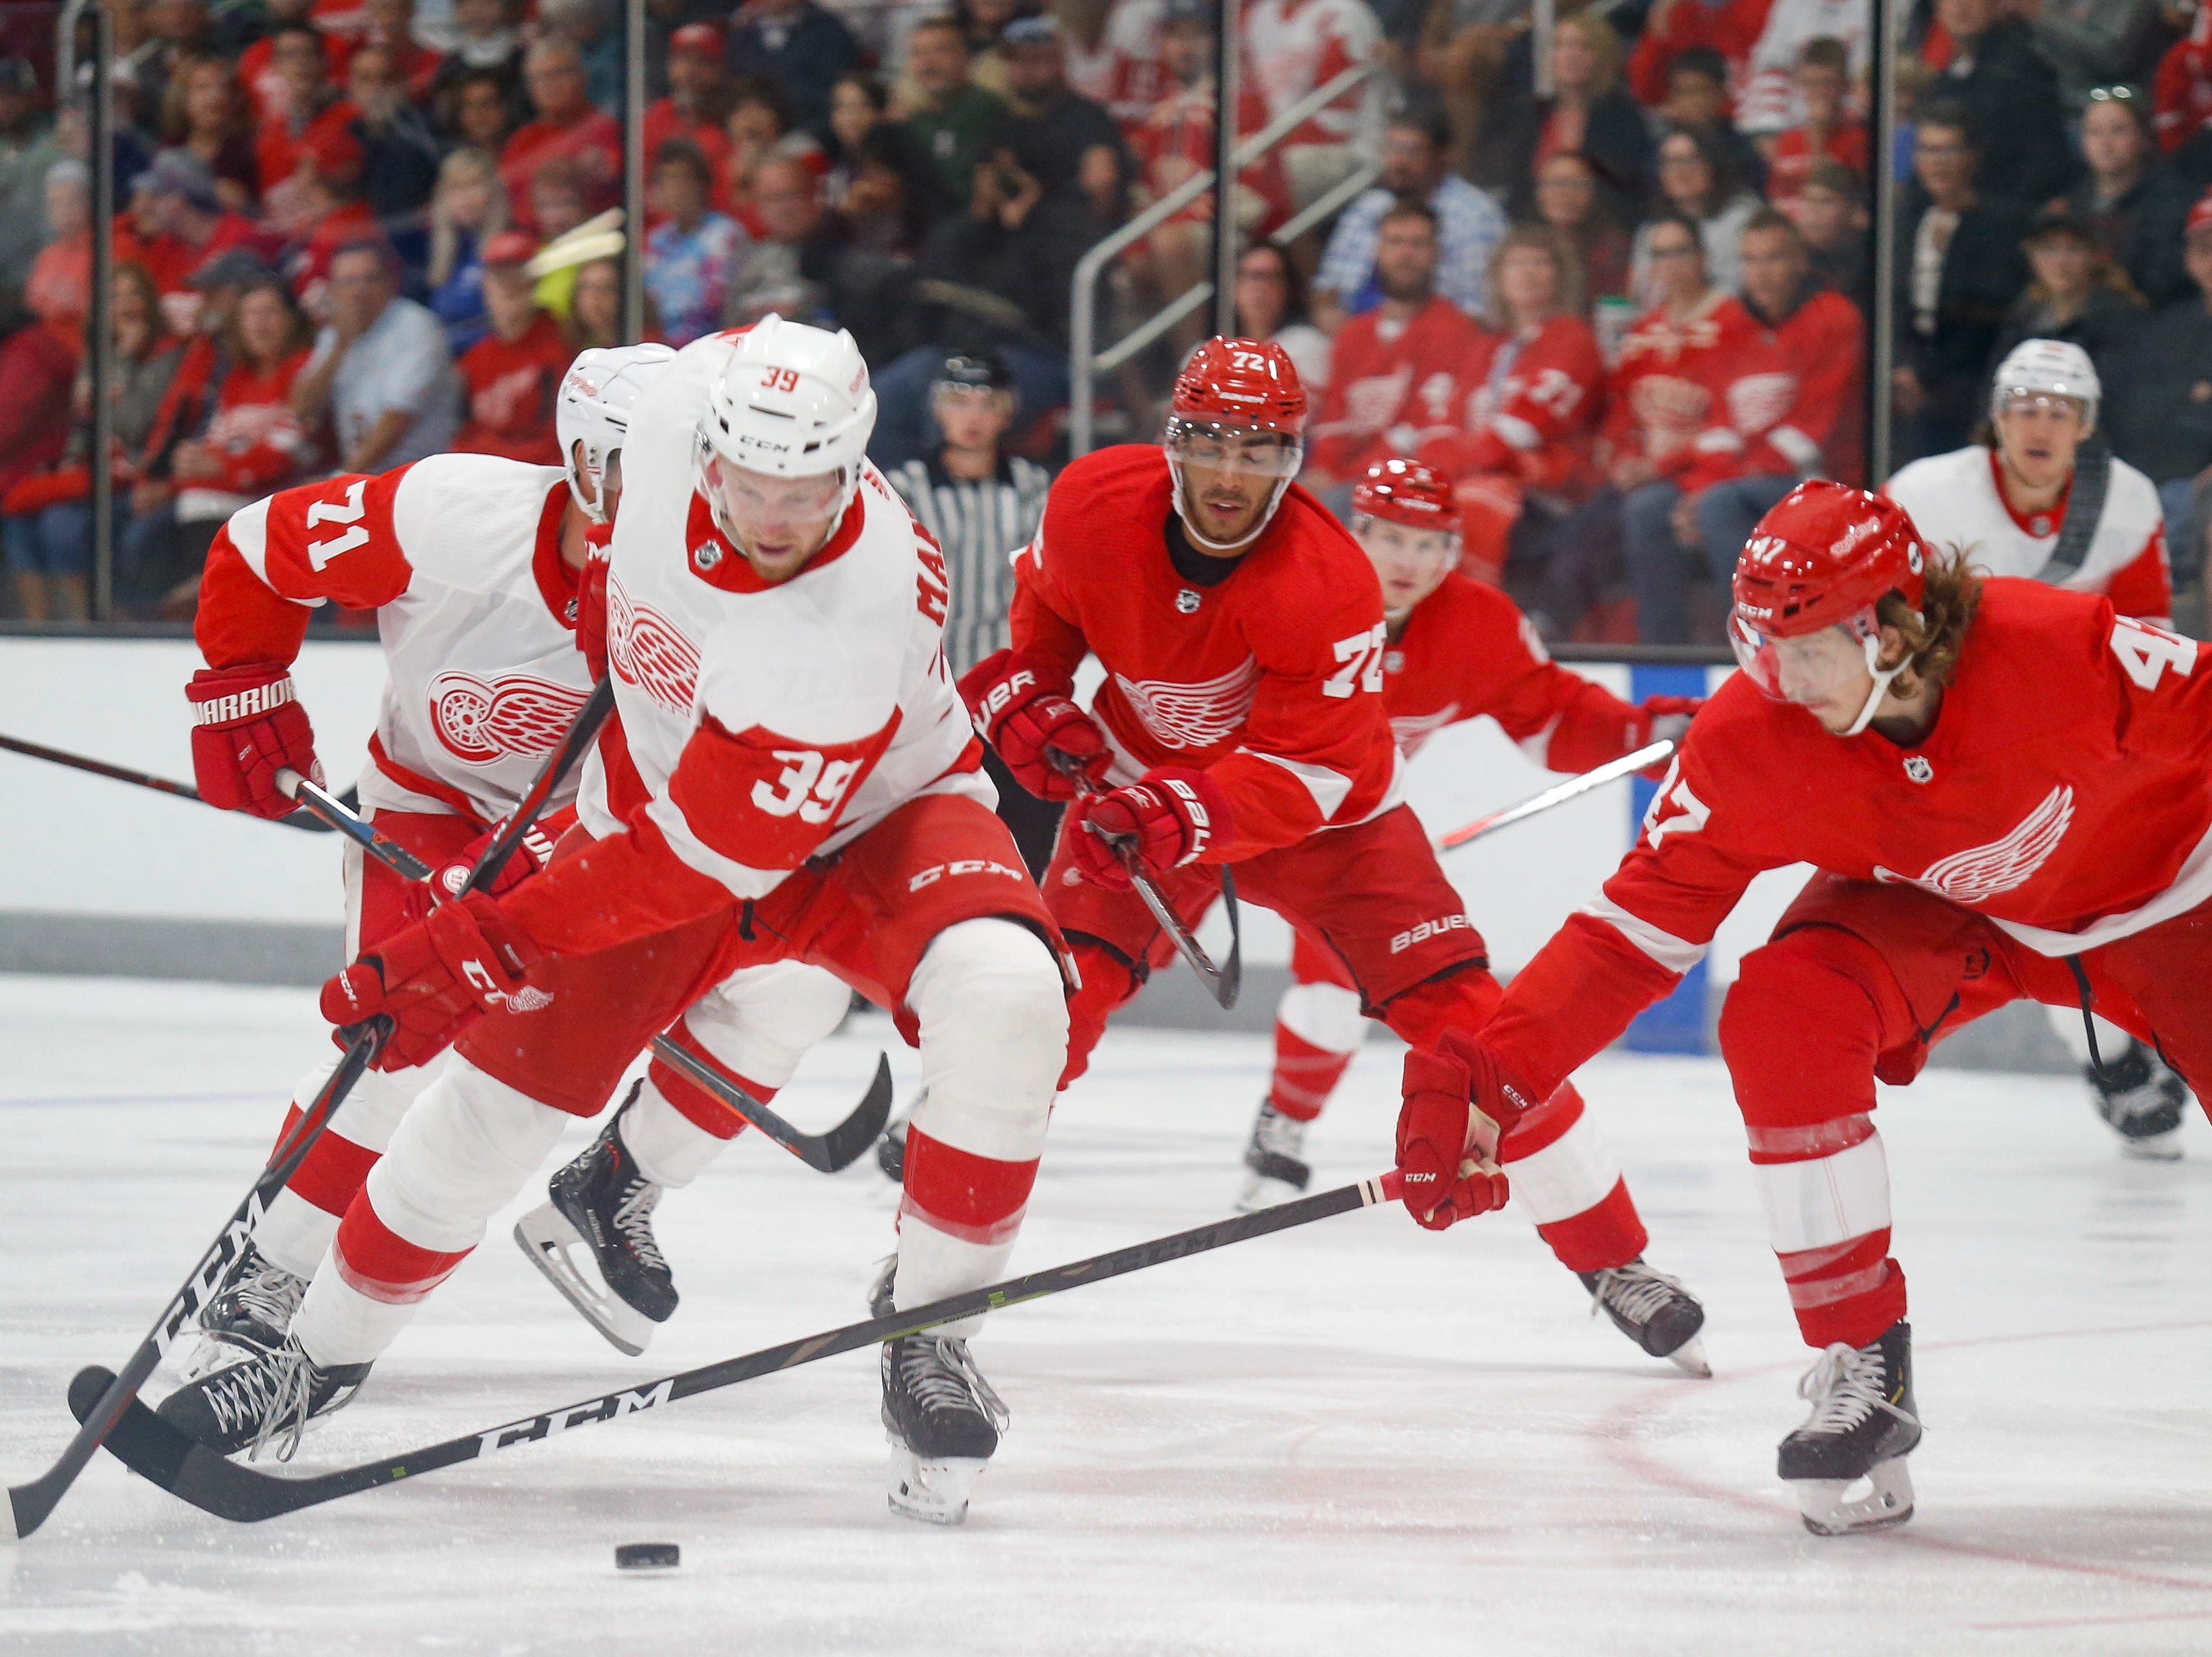 Anthony Mantha (39) tries to corral the puck with his backhand for a shot, but gets disrupted by Team Red defenseman Libor Sulak (47).